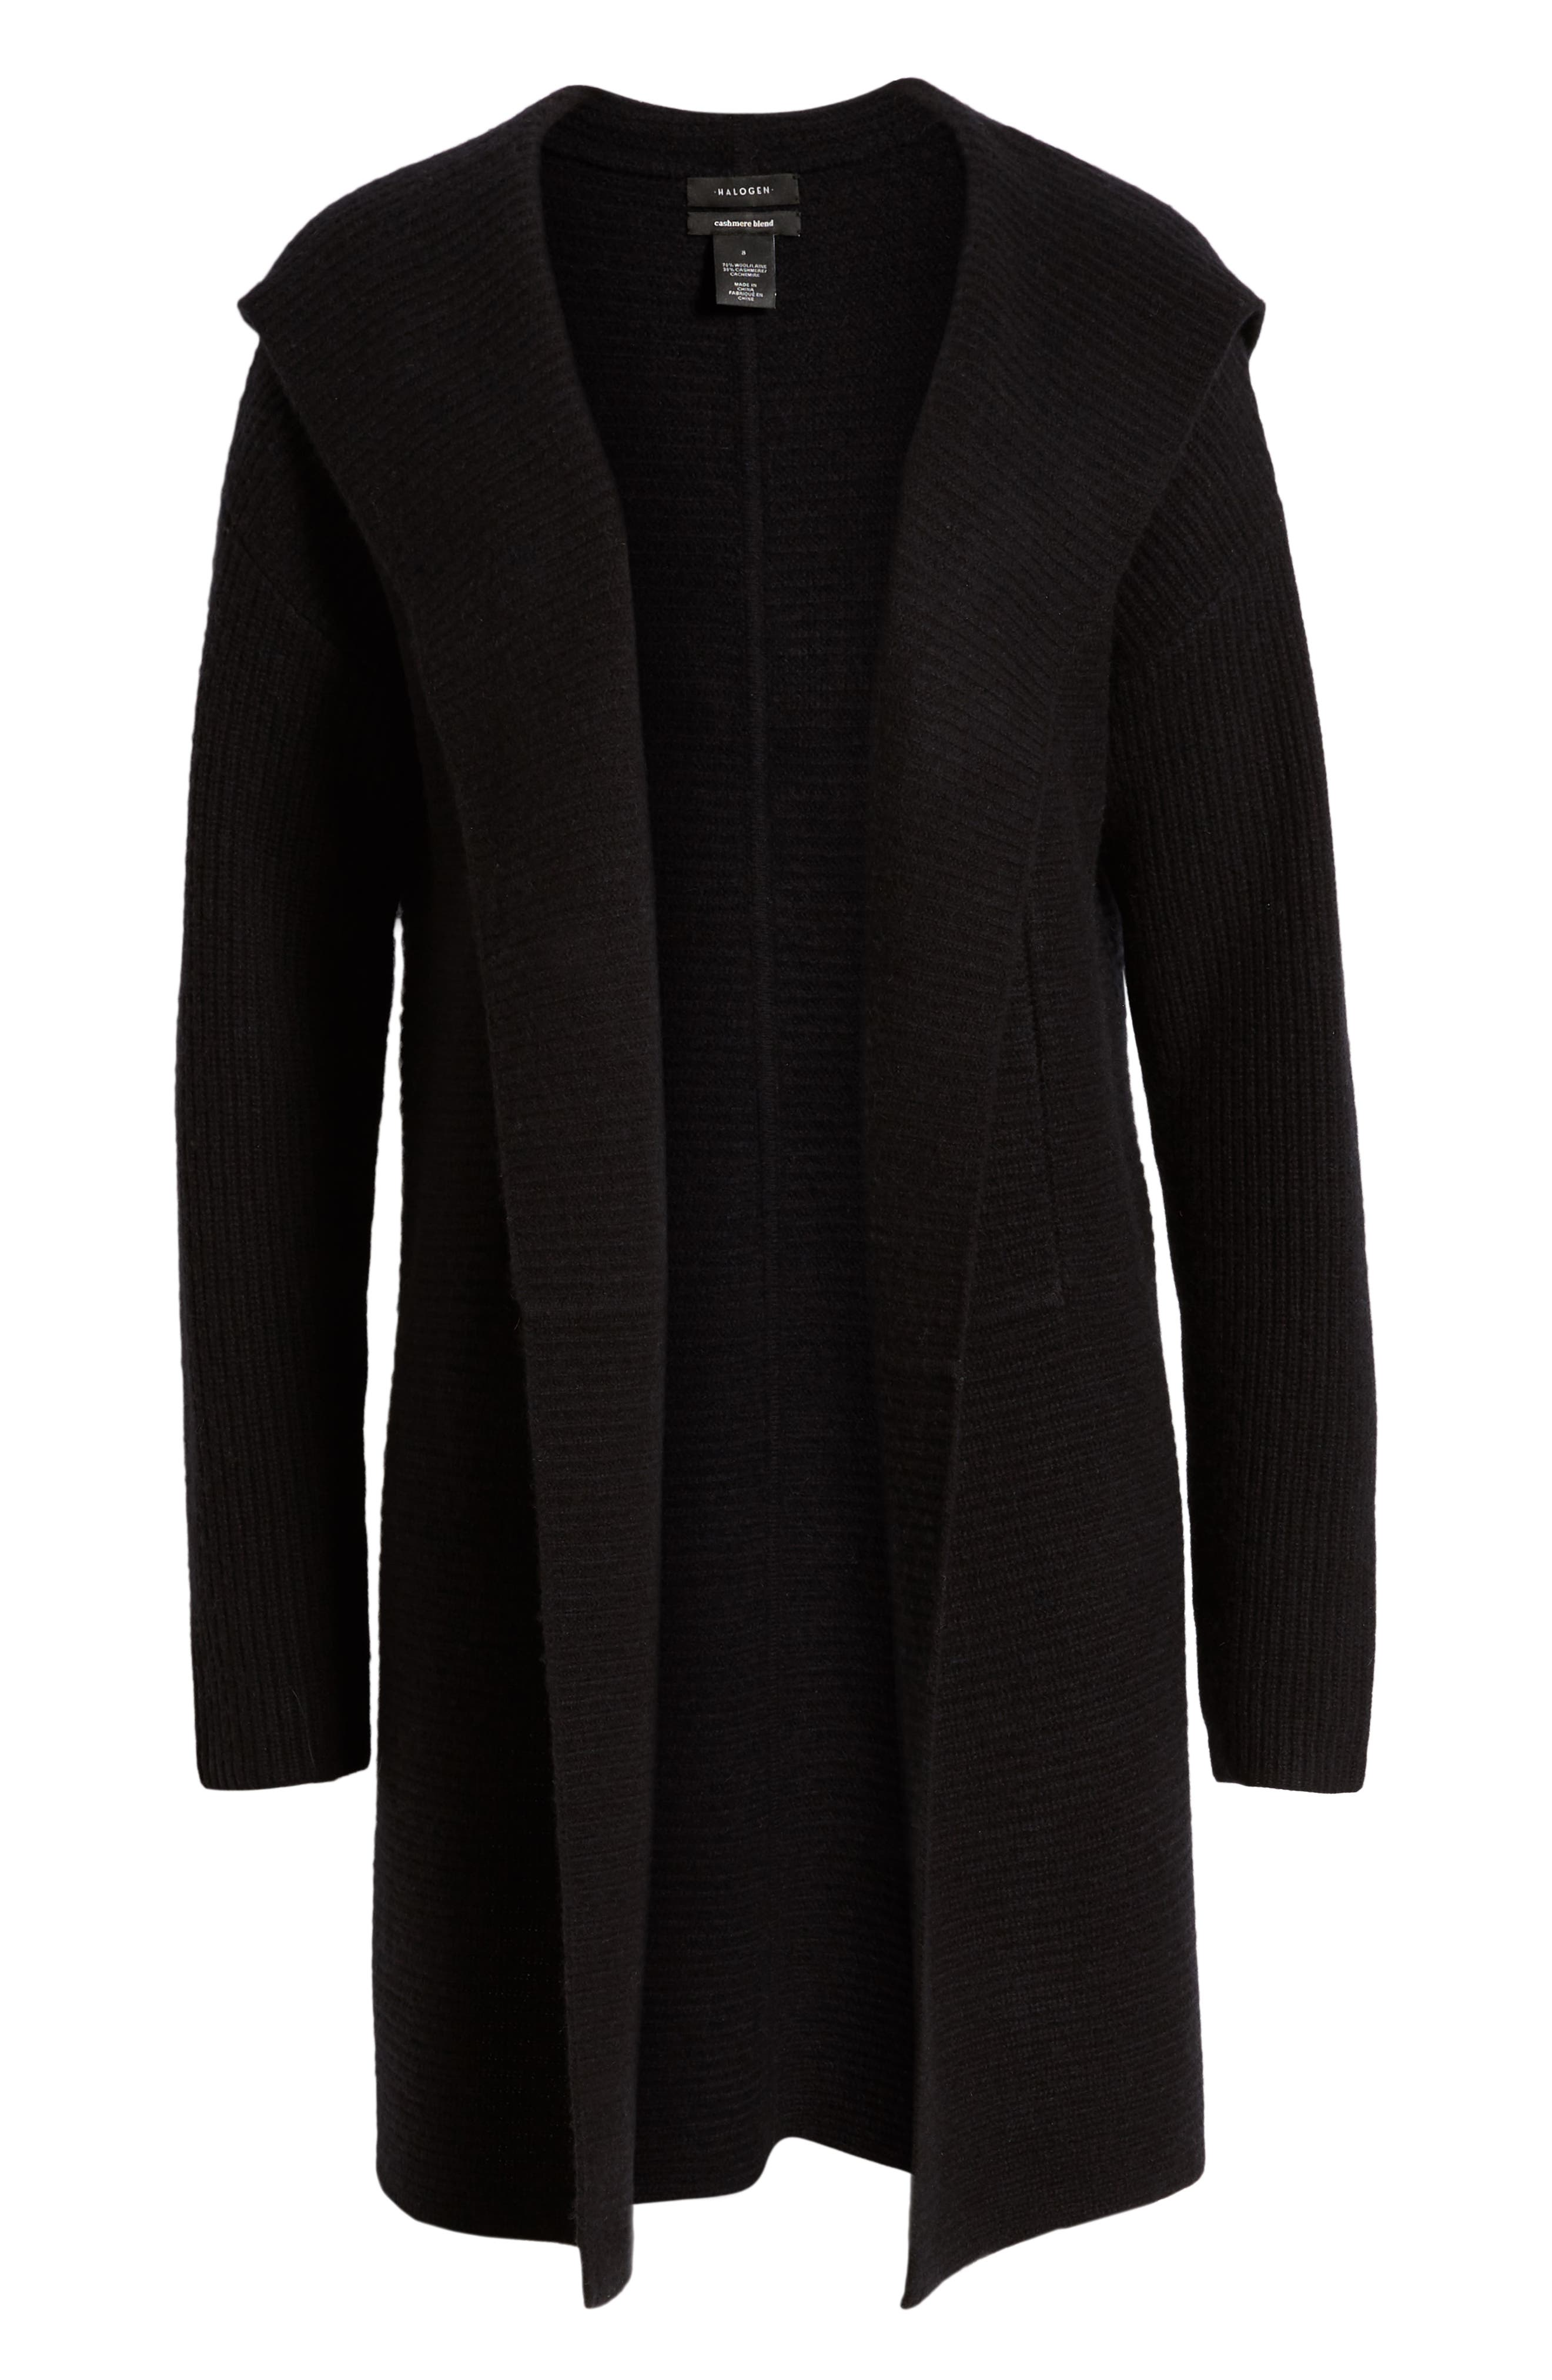 HALOGEN<SUP>®</SUP>, Hooded Wool & Cashmere Cardigan, Alternate thumbnail 6, color, 001